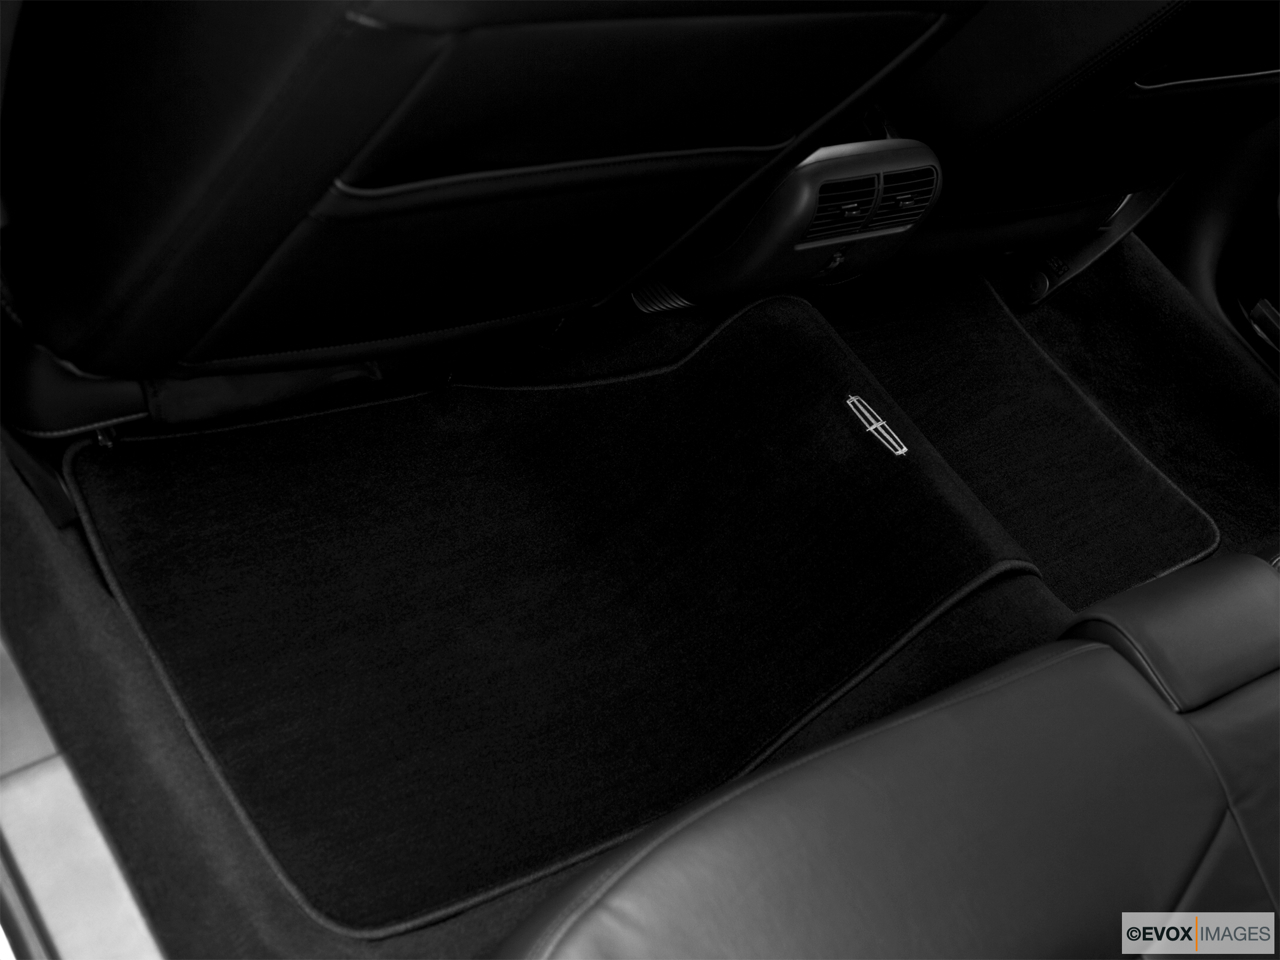 2010 Lincoln Town Car Signature L Rear driver's side floor mat. Mid-seat level from outside looking in.